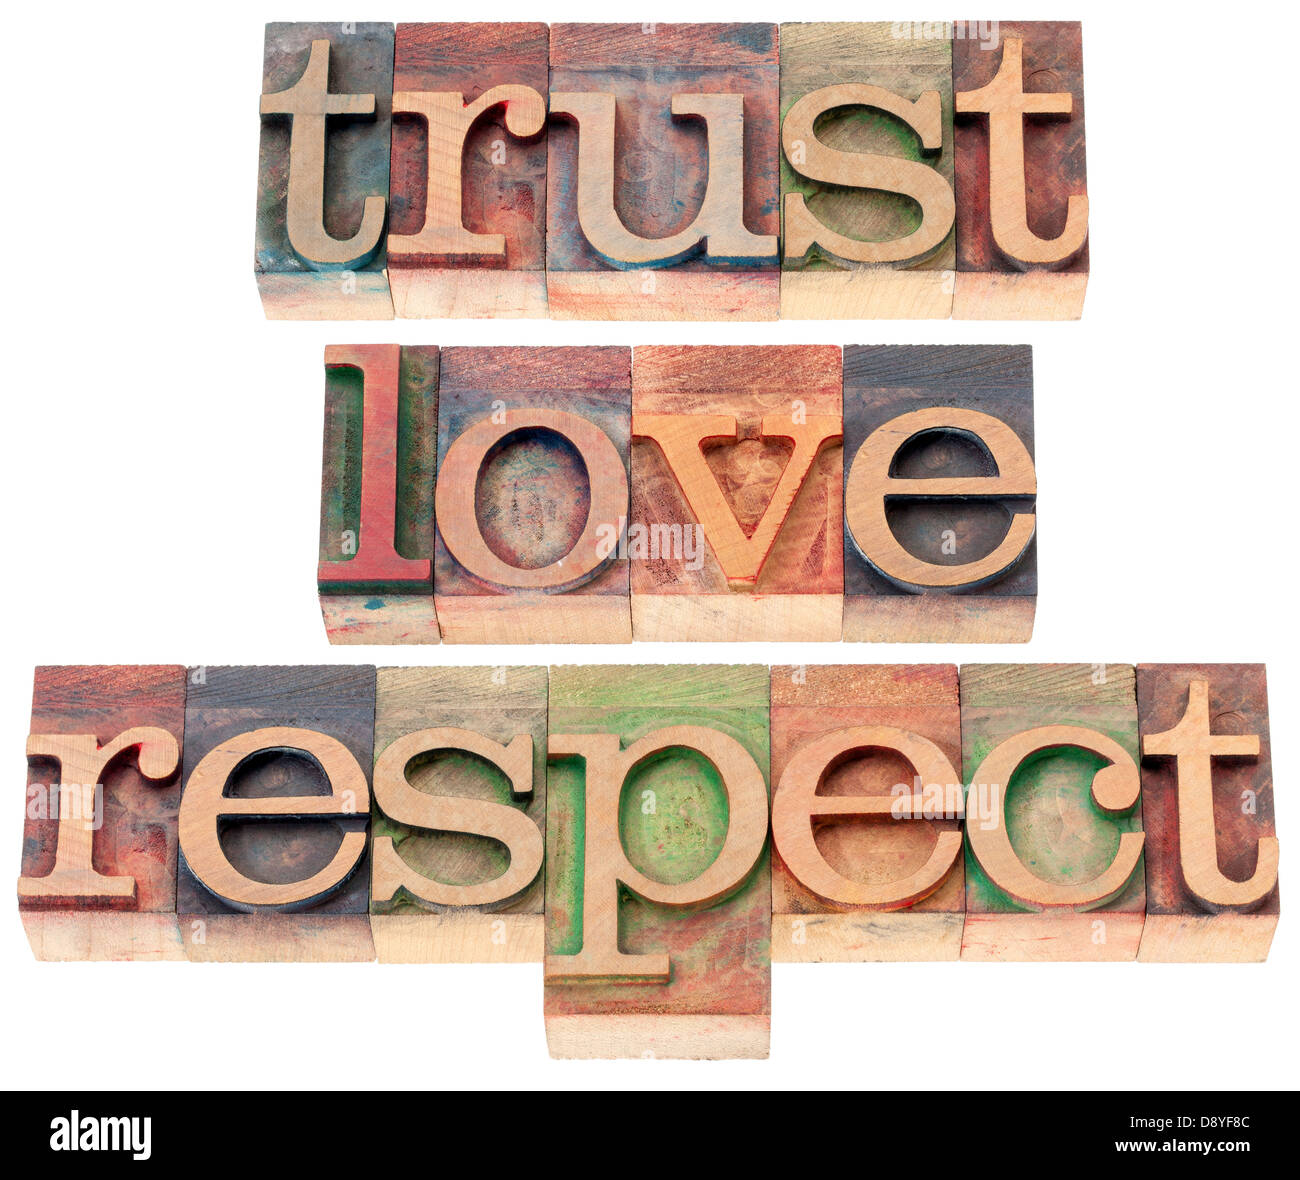 trust, love, respect words - relationship concept - isolated